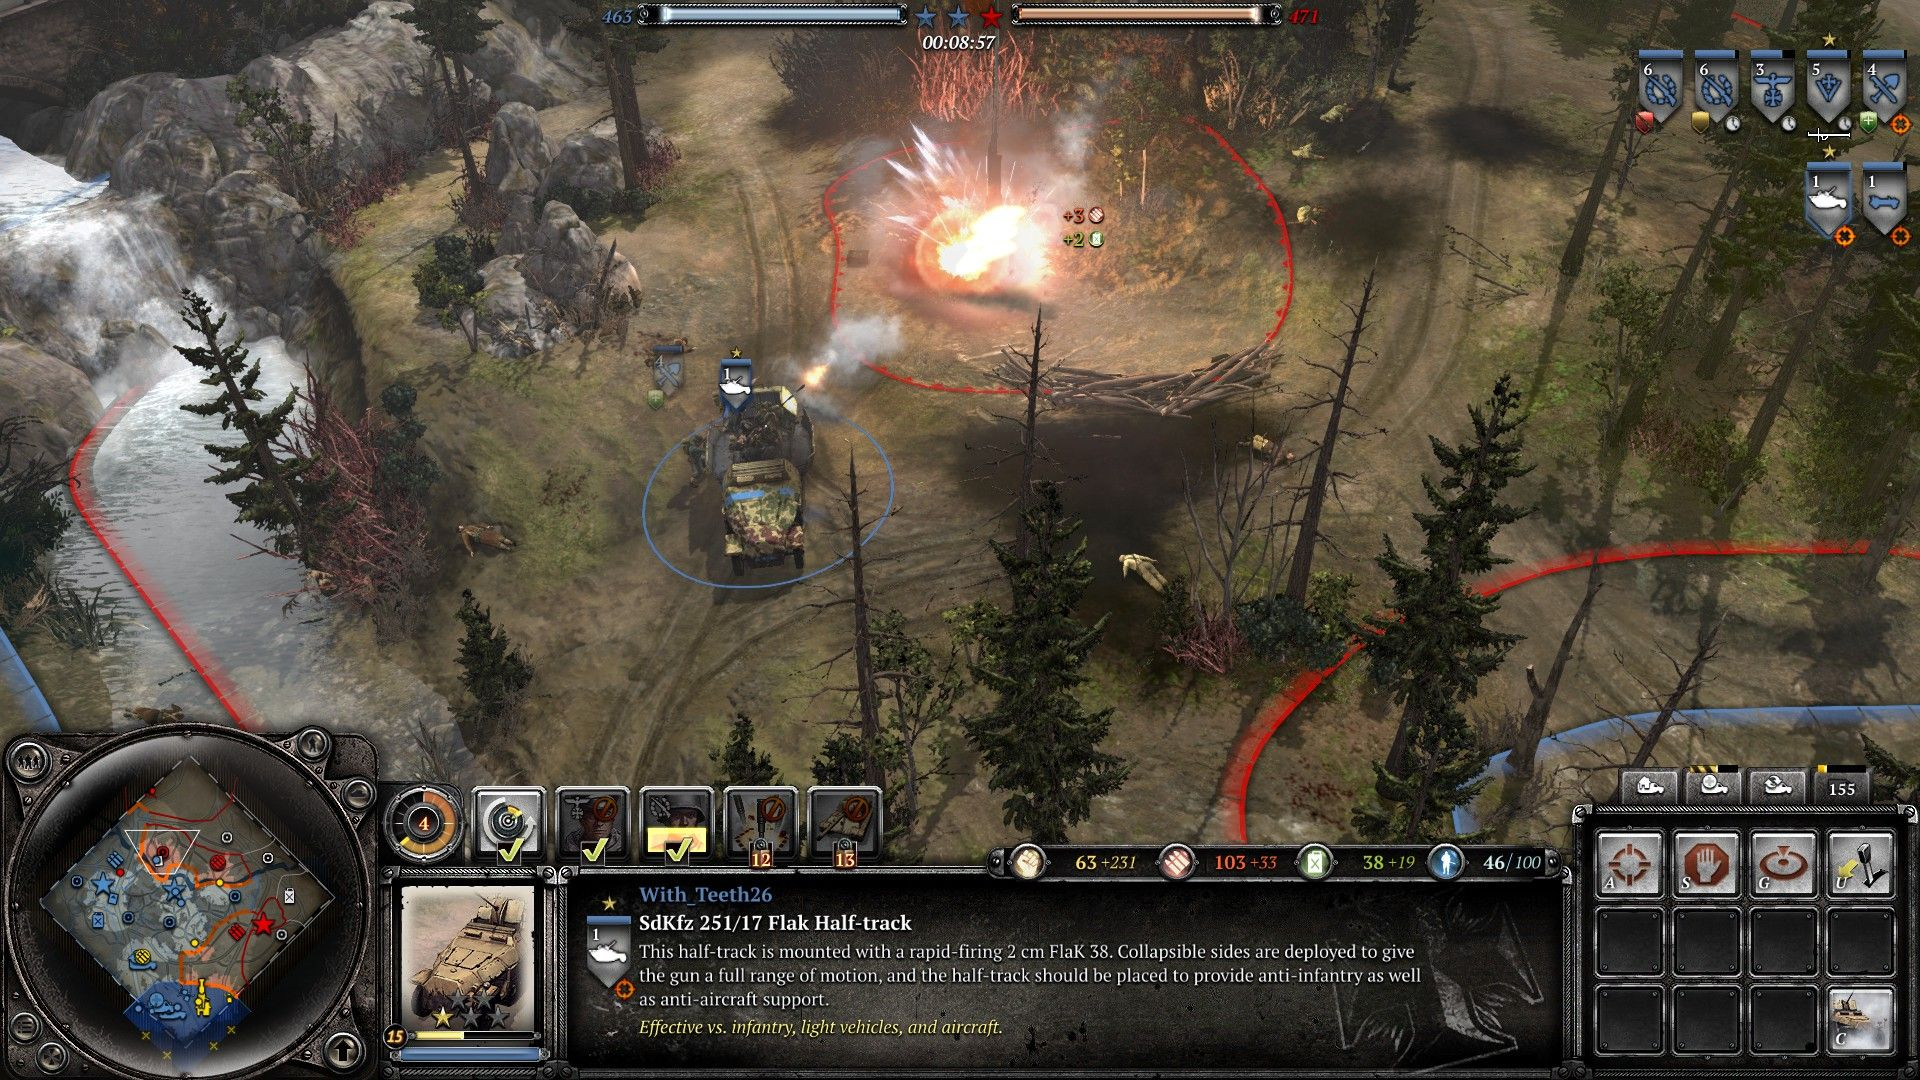 Free Download Company Of Heroes 2 The Western Front Armies Review New Game 1920x1080 For Your Desktop Mobile Tablet Explore 32 Company Of Heroes 2 Western Front Wallpaper Tanks